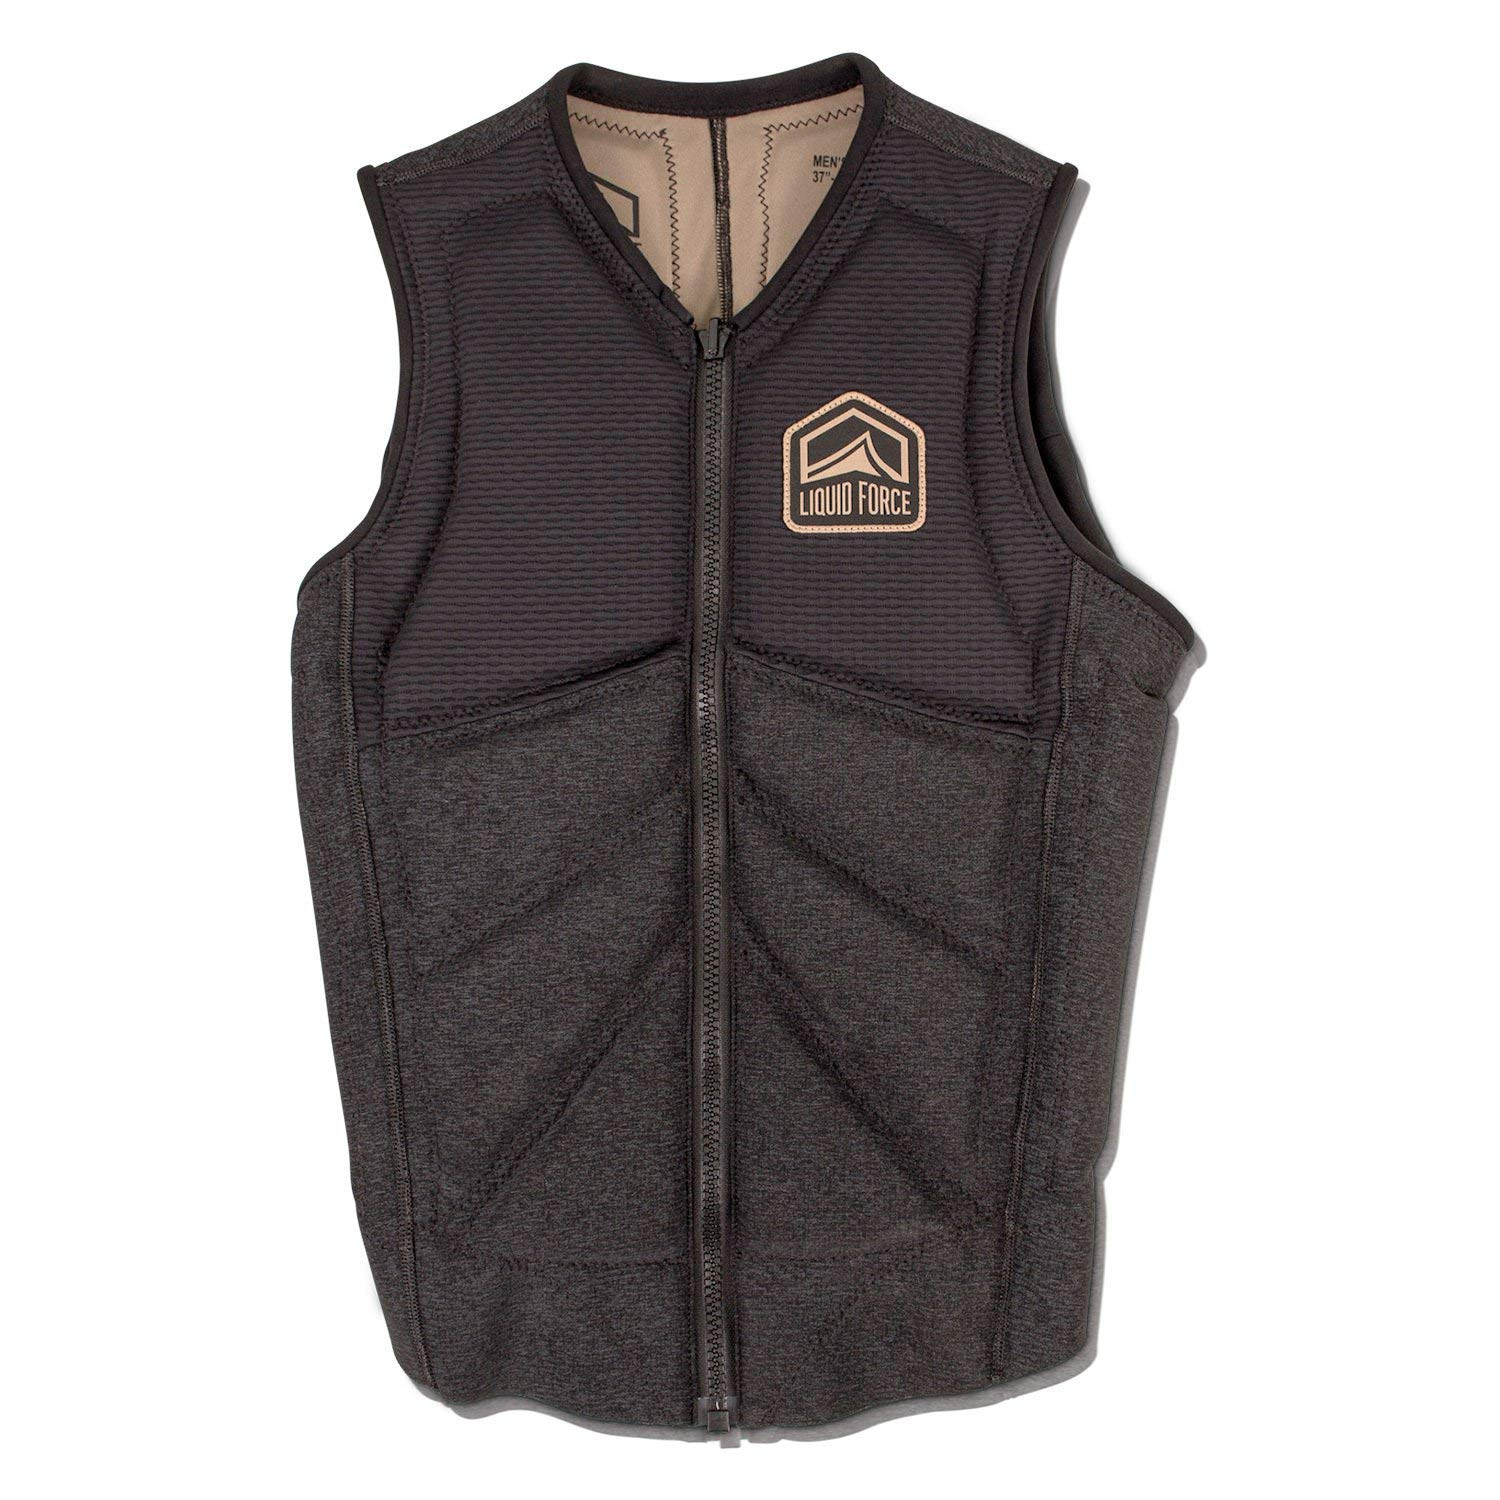 Liquid Force 2019 Z-Cardigan (Black) Comp Vest-Small by Liquid Force